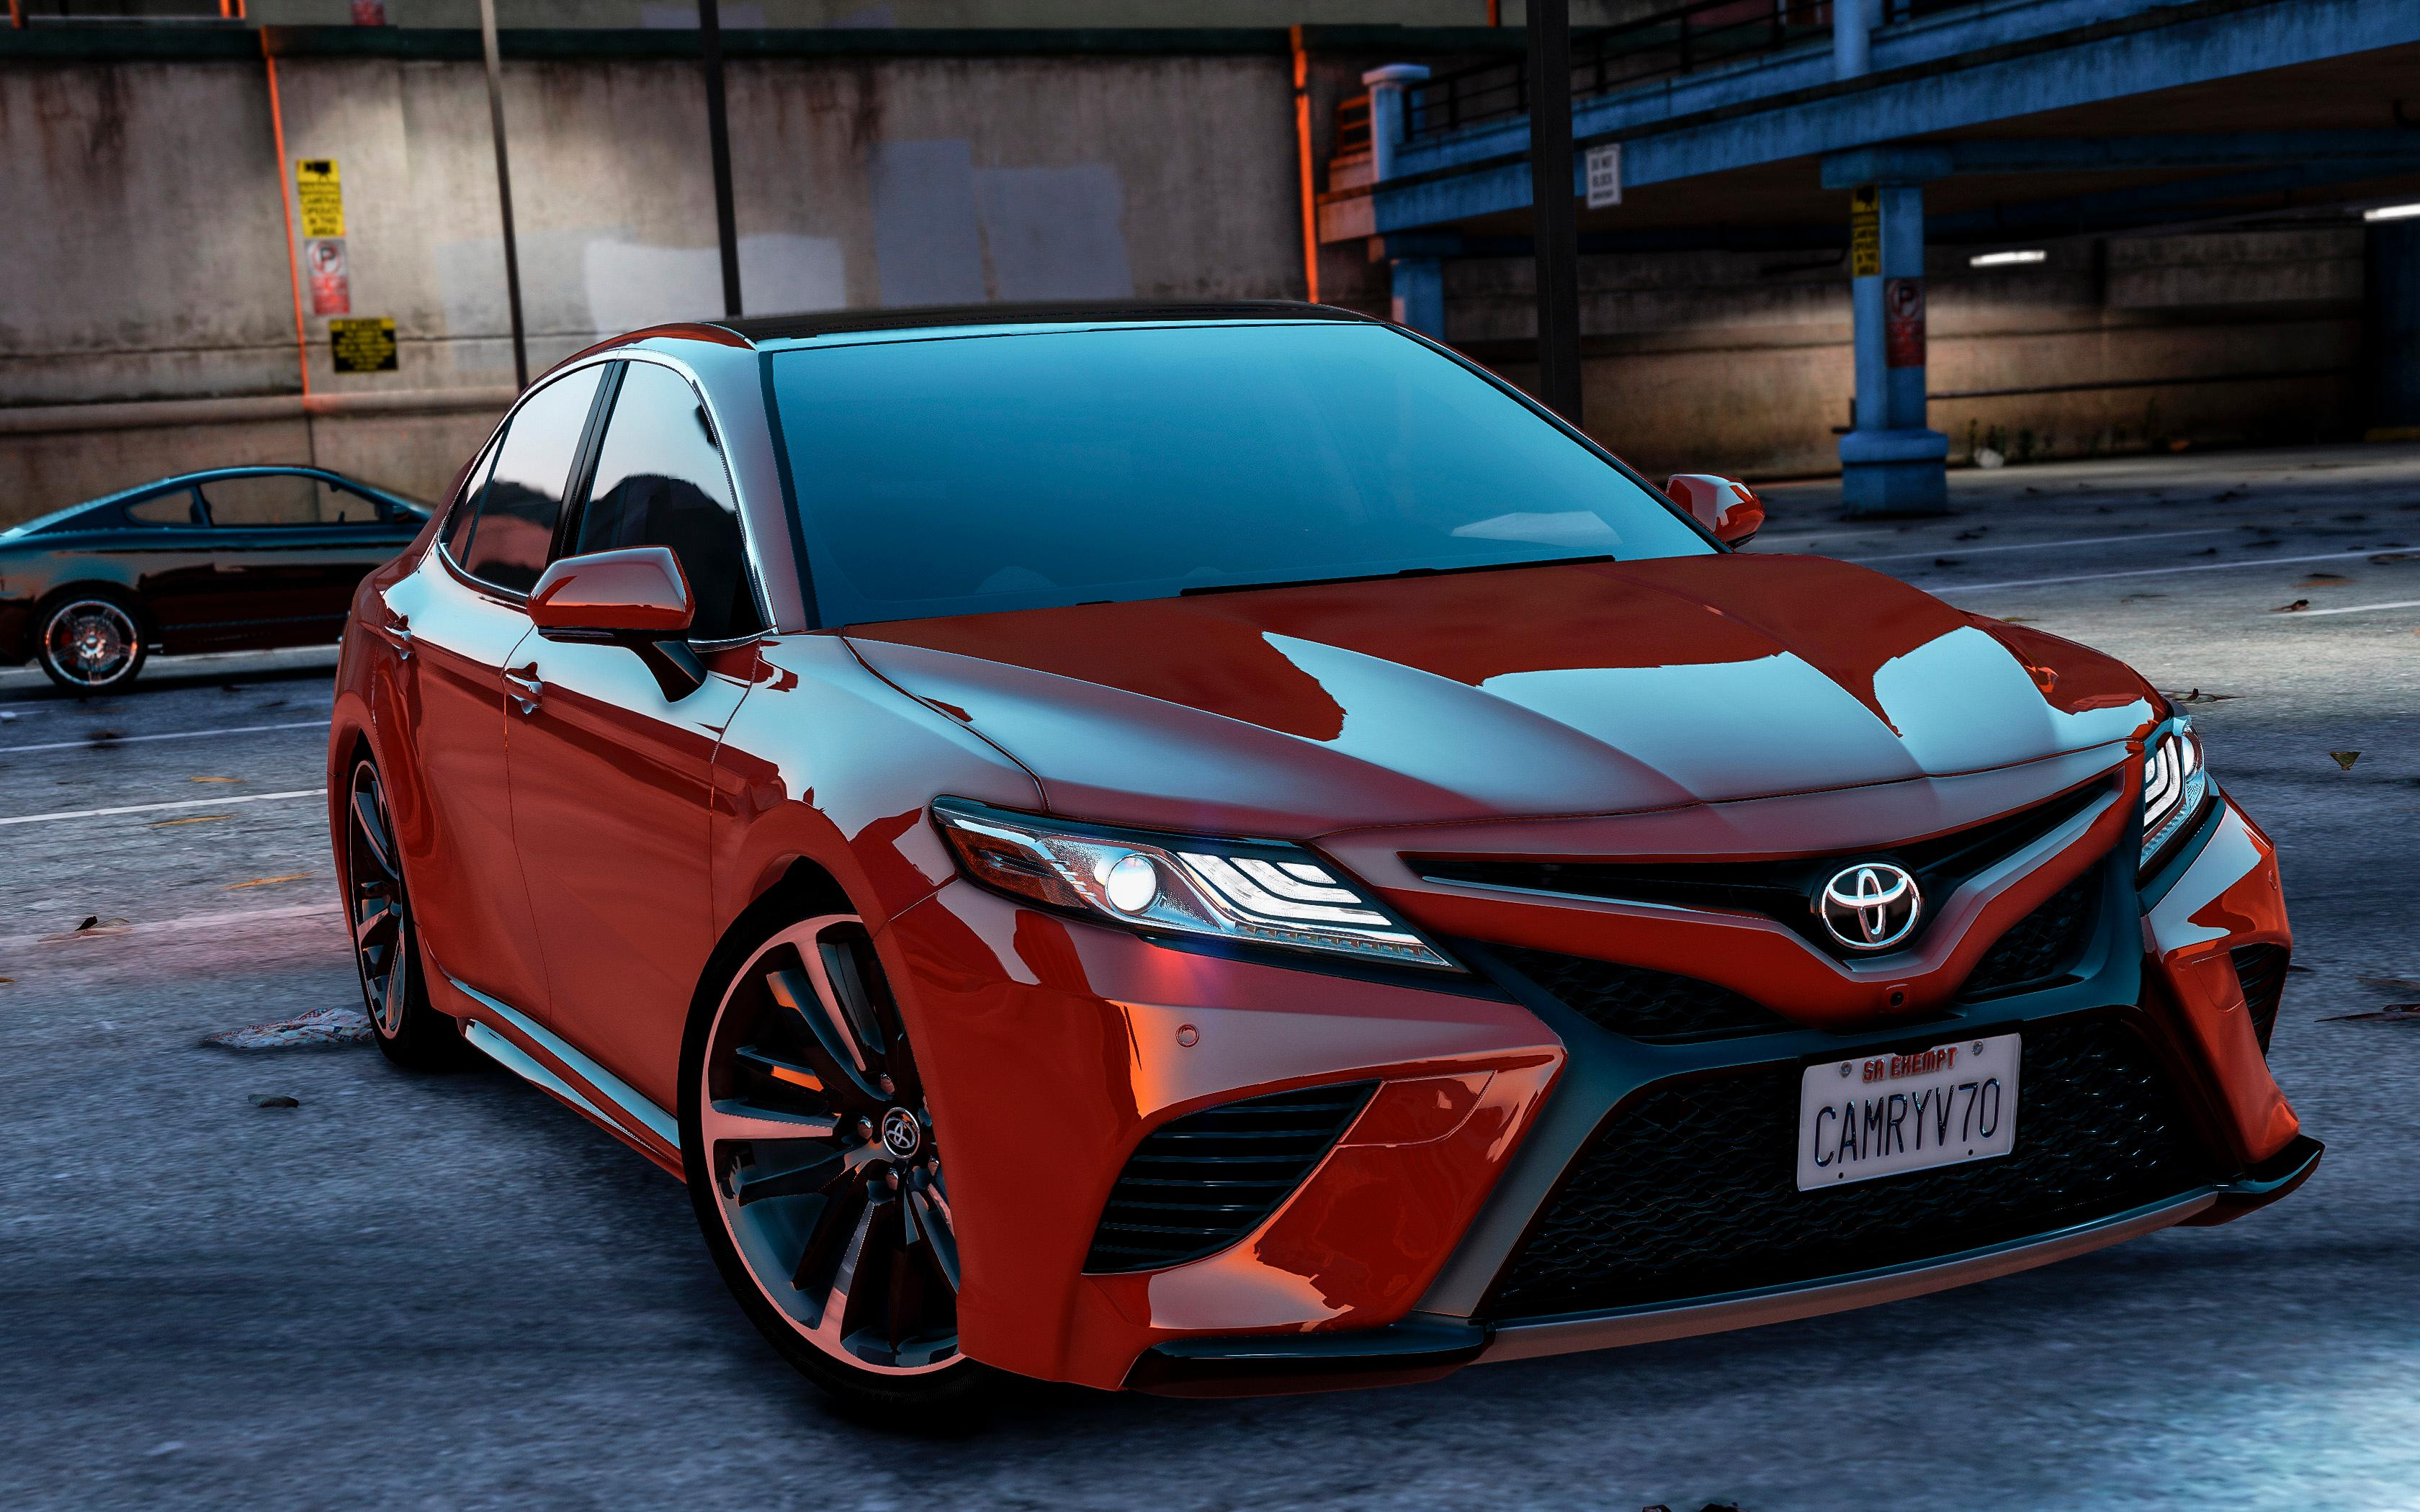 2015 Toyota Camry Xse >> Toyota Camry XSE 2018 [Replace / Add-On] - GTA5-Mods.com